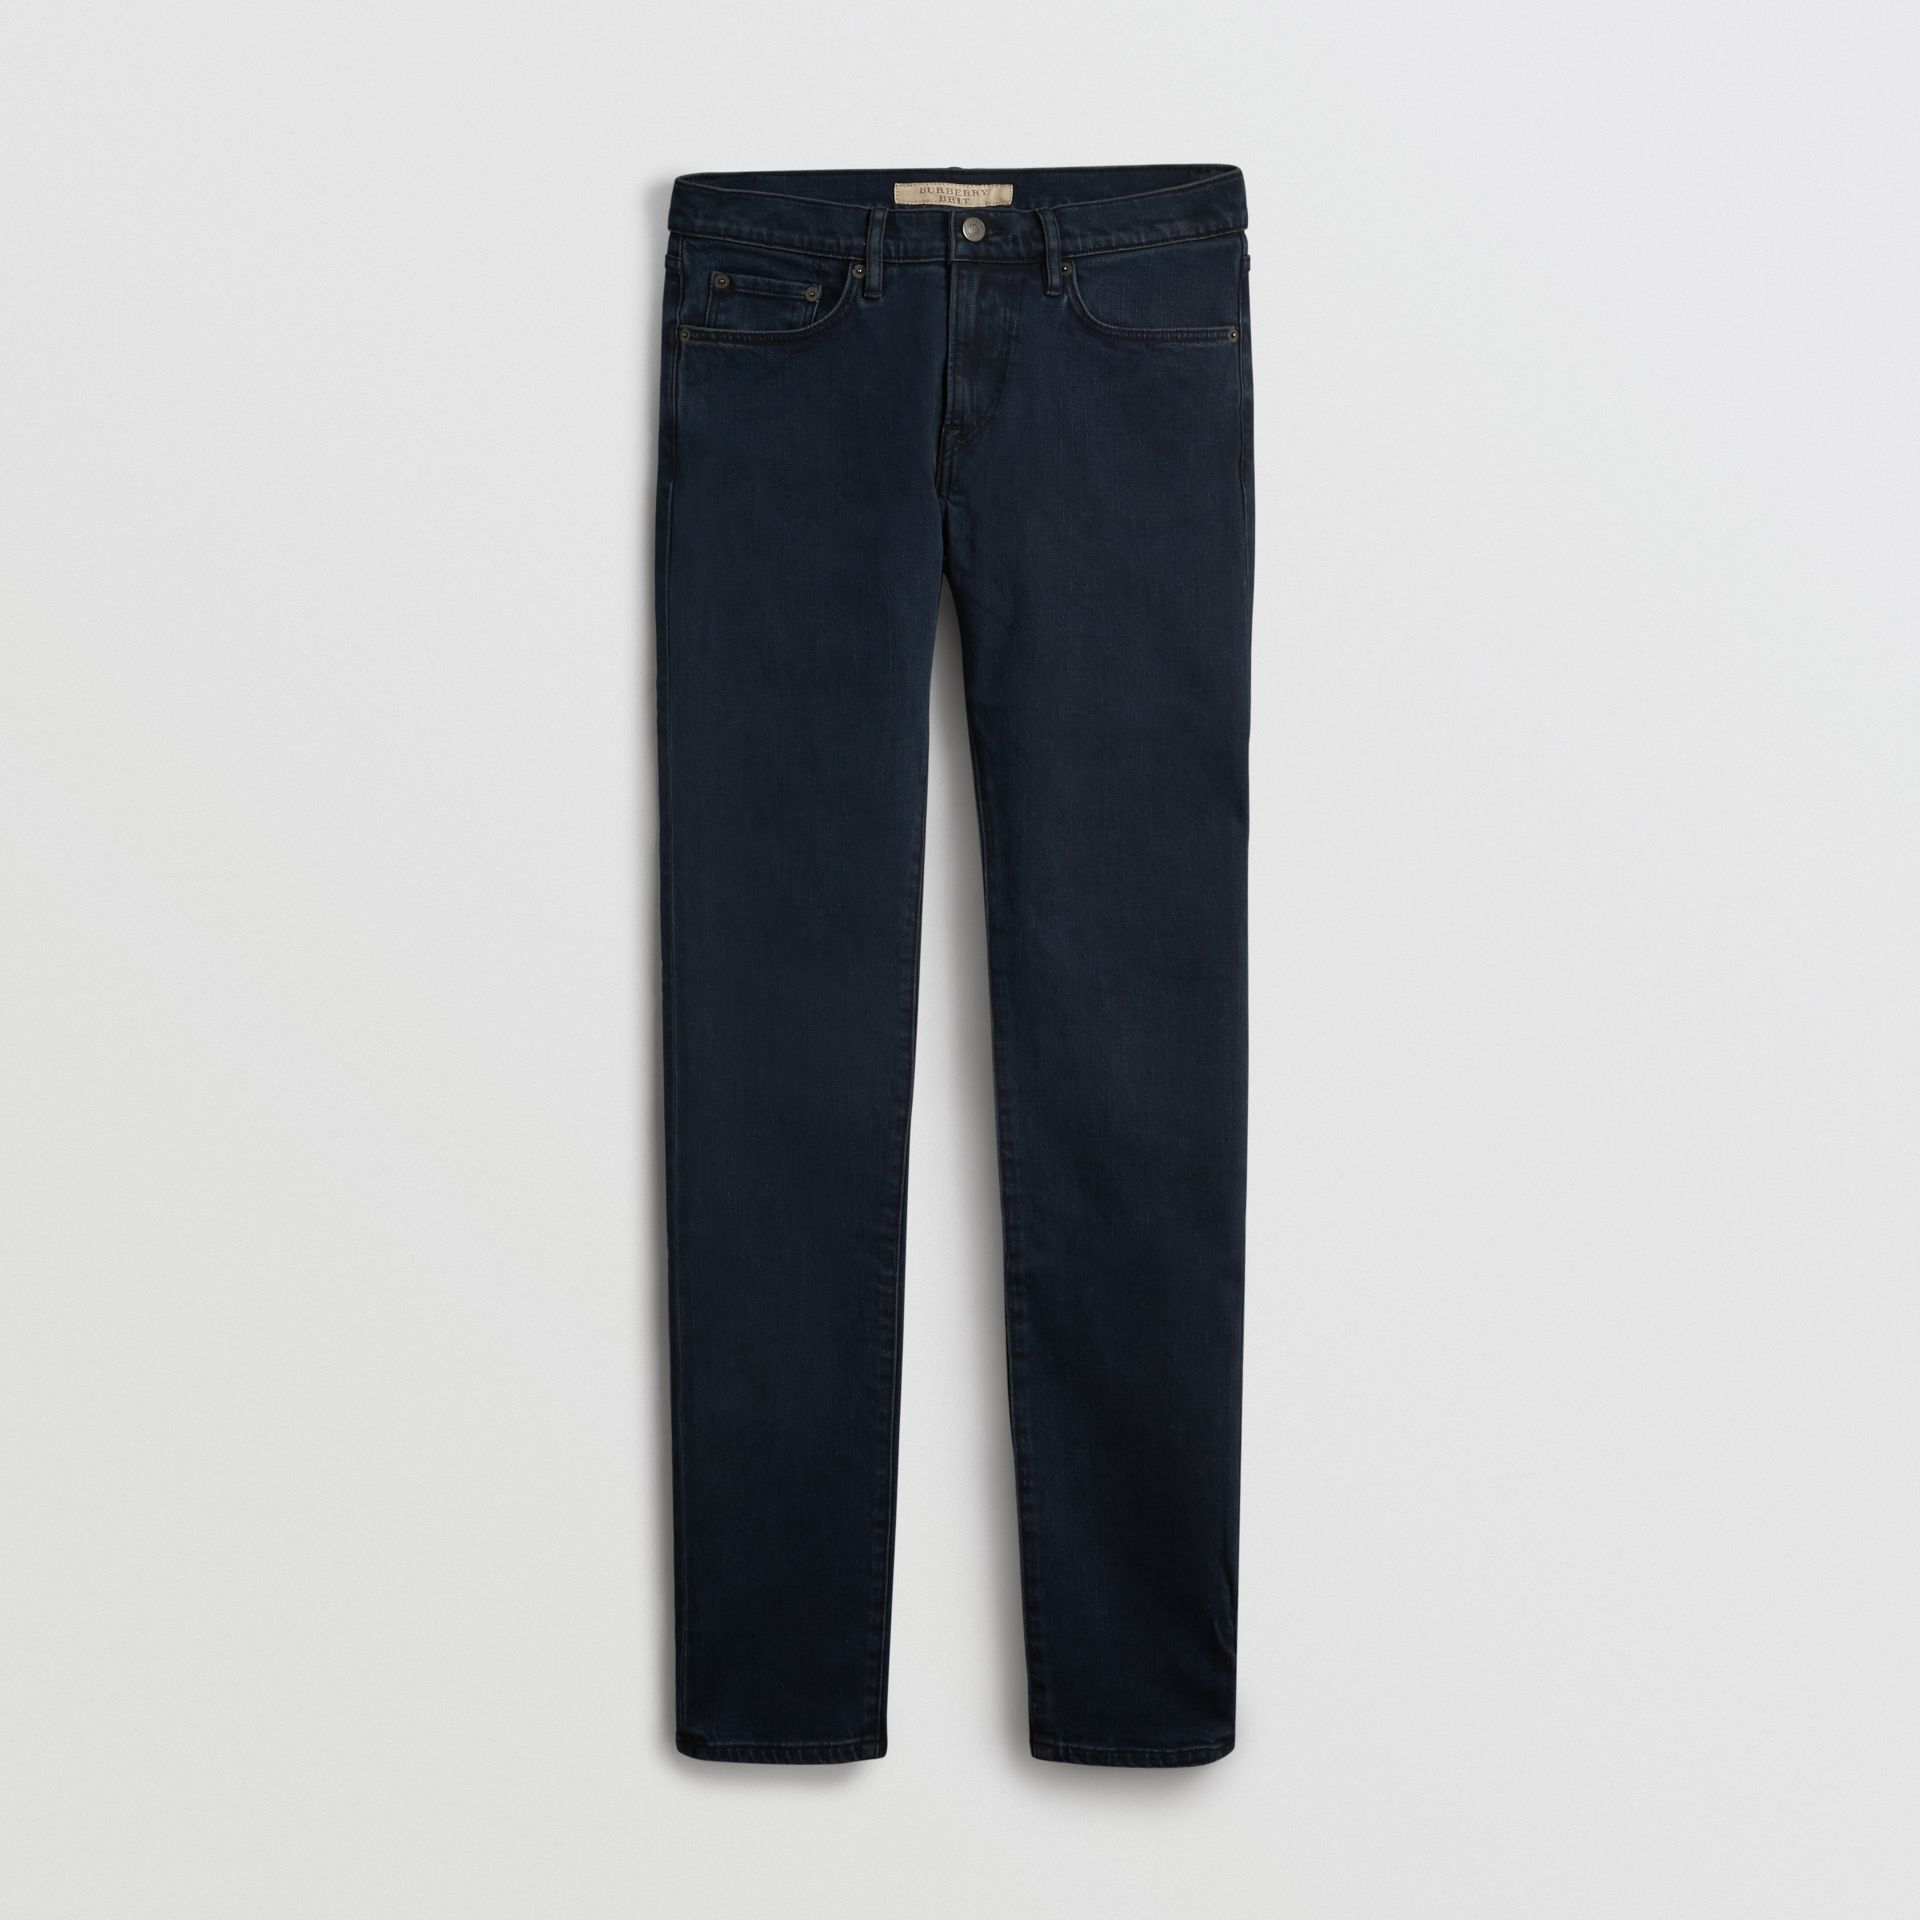 Slim Fit Stretch Denim Jeans in Dark Indigo - Men | Burberry Singapore - gallery image 3